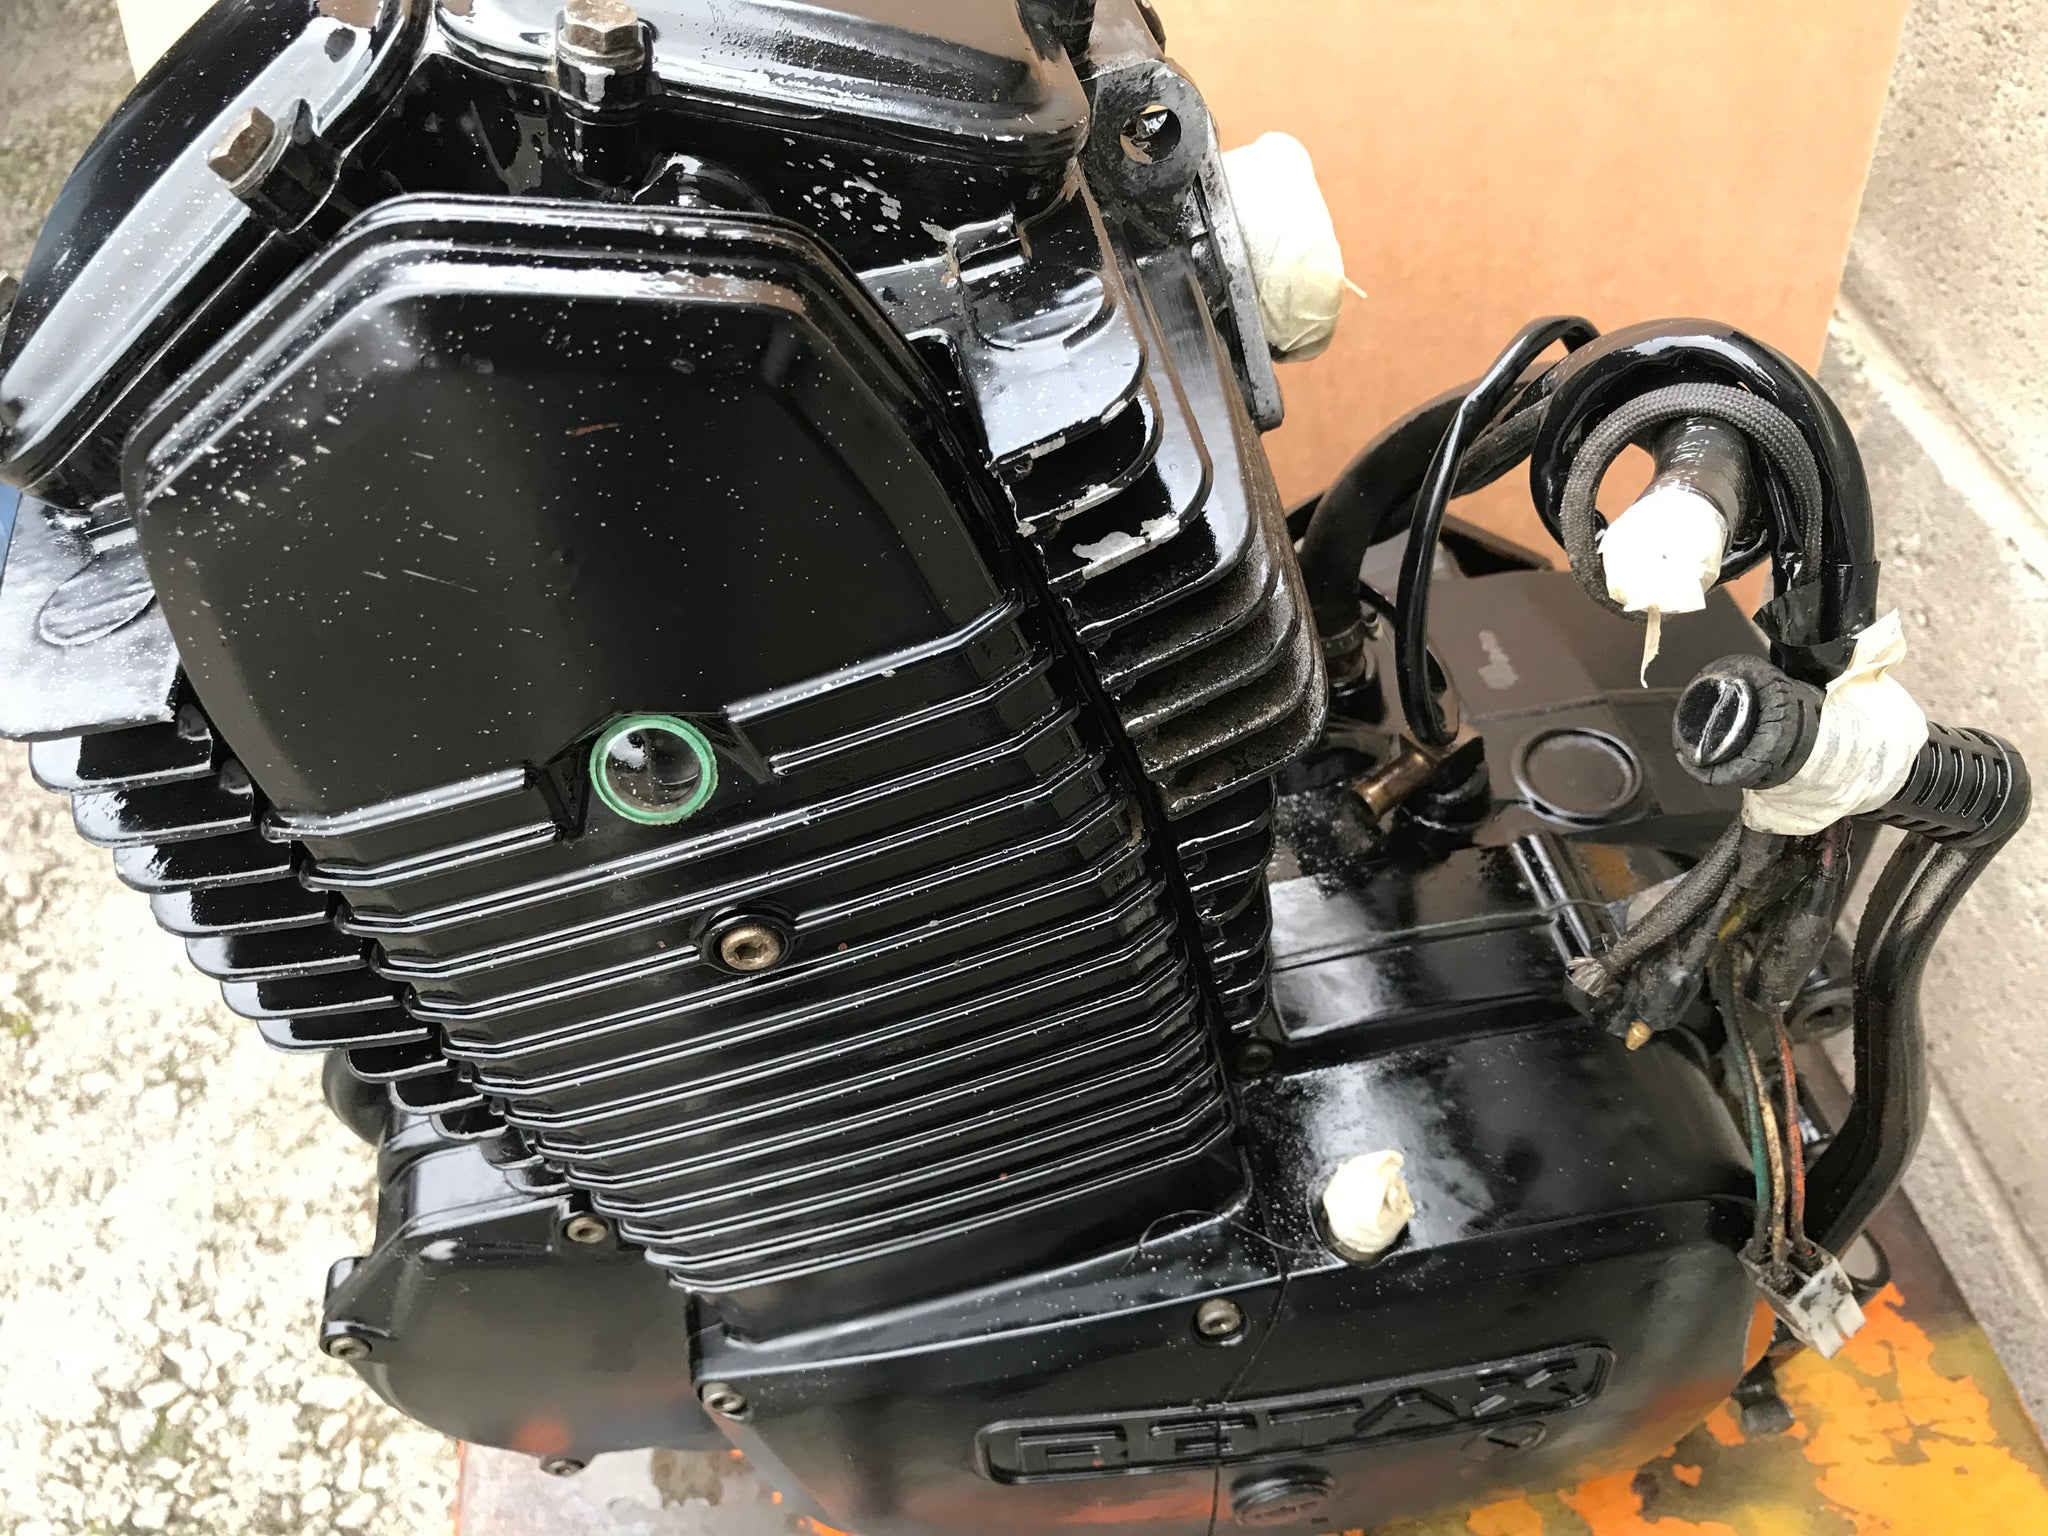 Rotax Motorcycle Engine Diagram Clutch Not Lossing Wiring Force Motorcycles Mt350 Mt500 And Parts Rh Forcemotorcycles Com Starter Old Engines